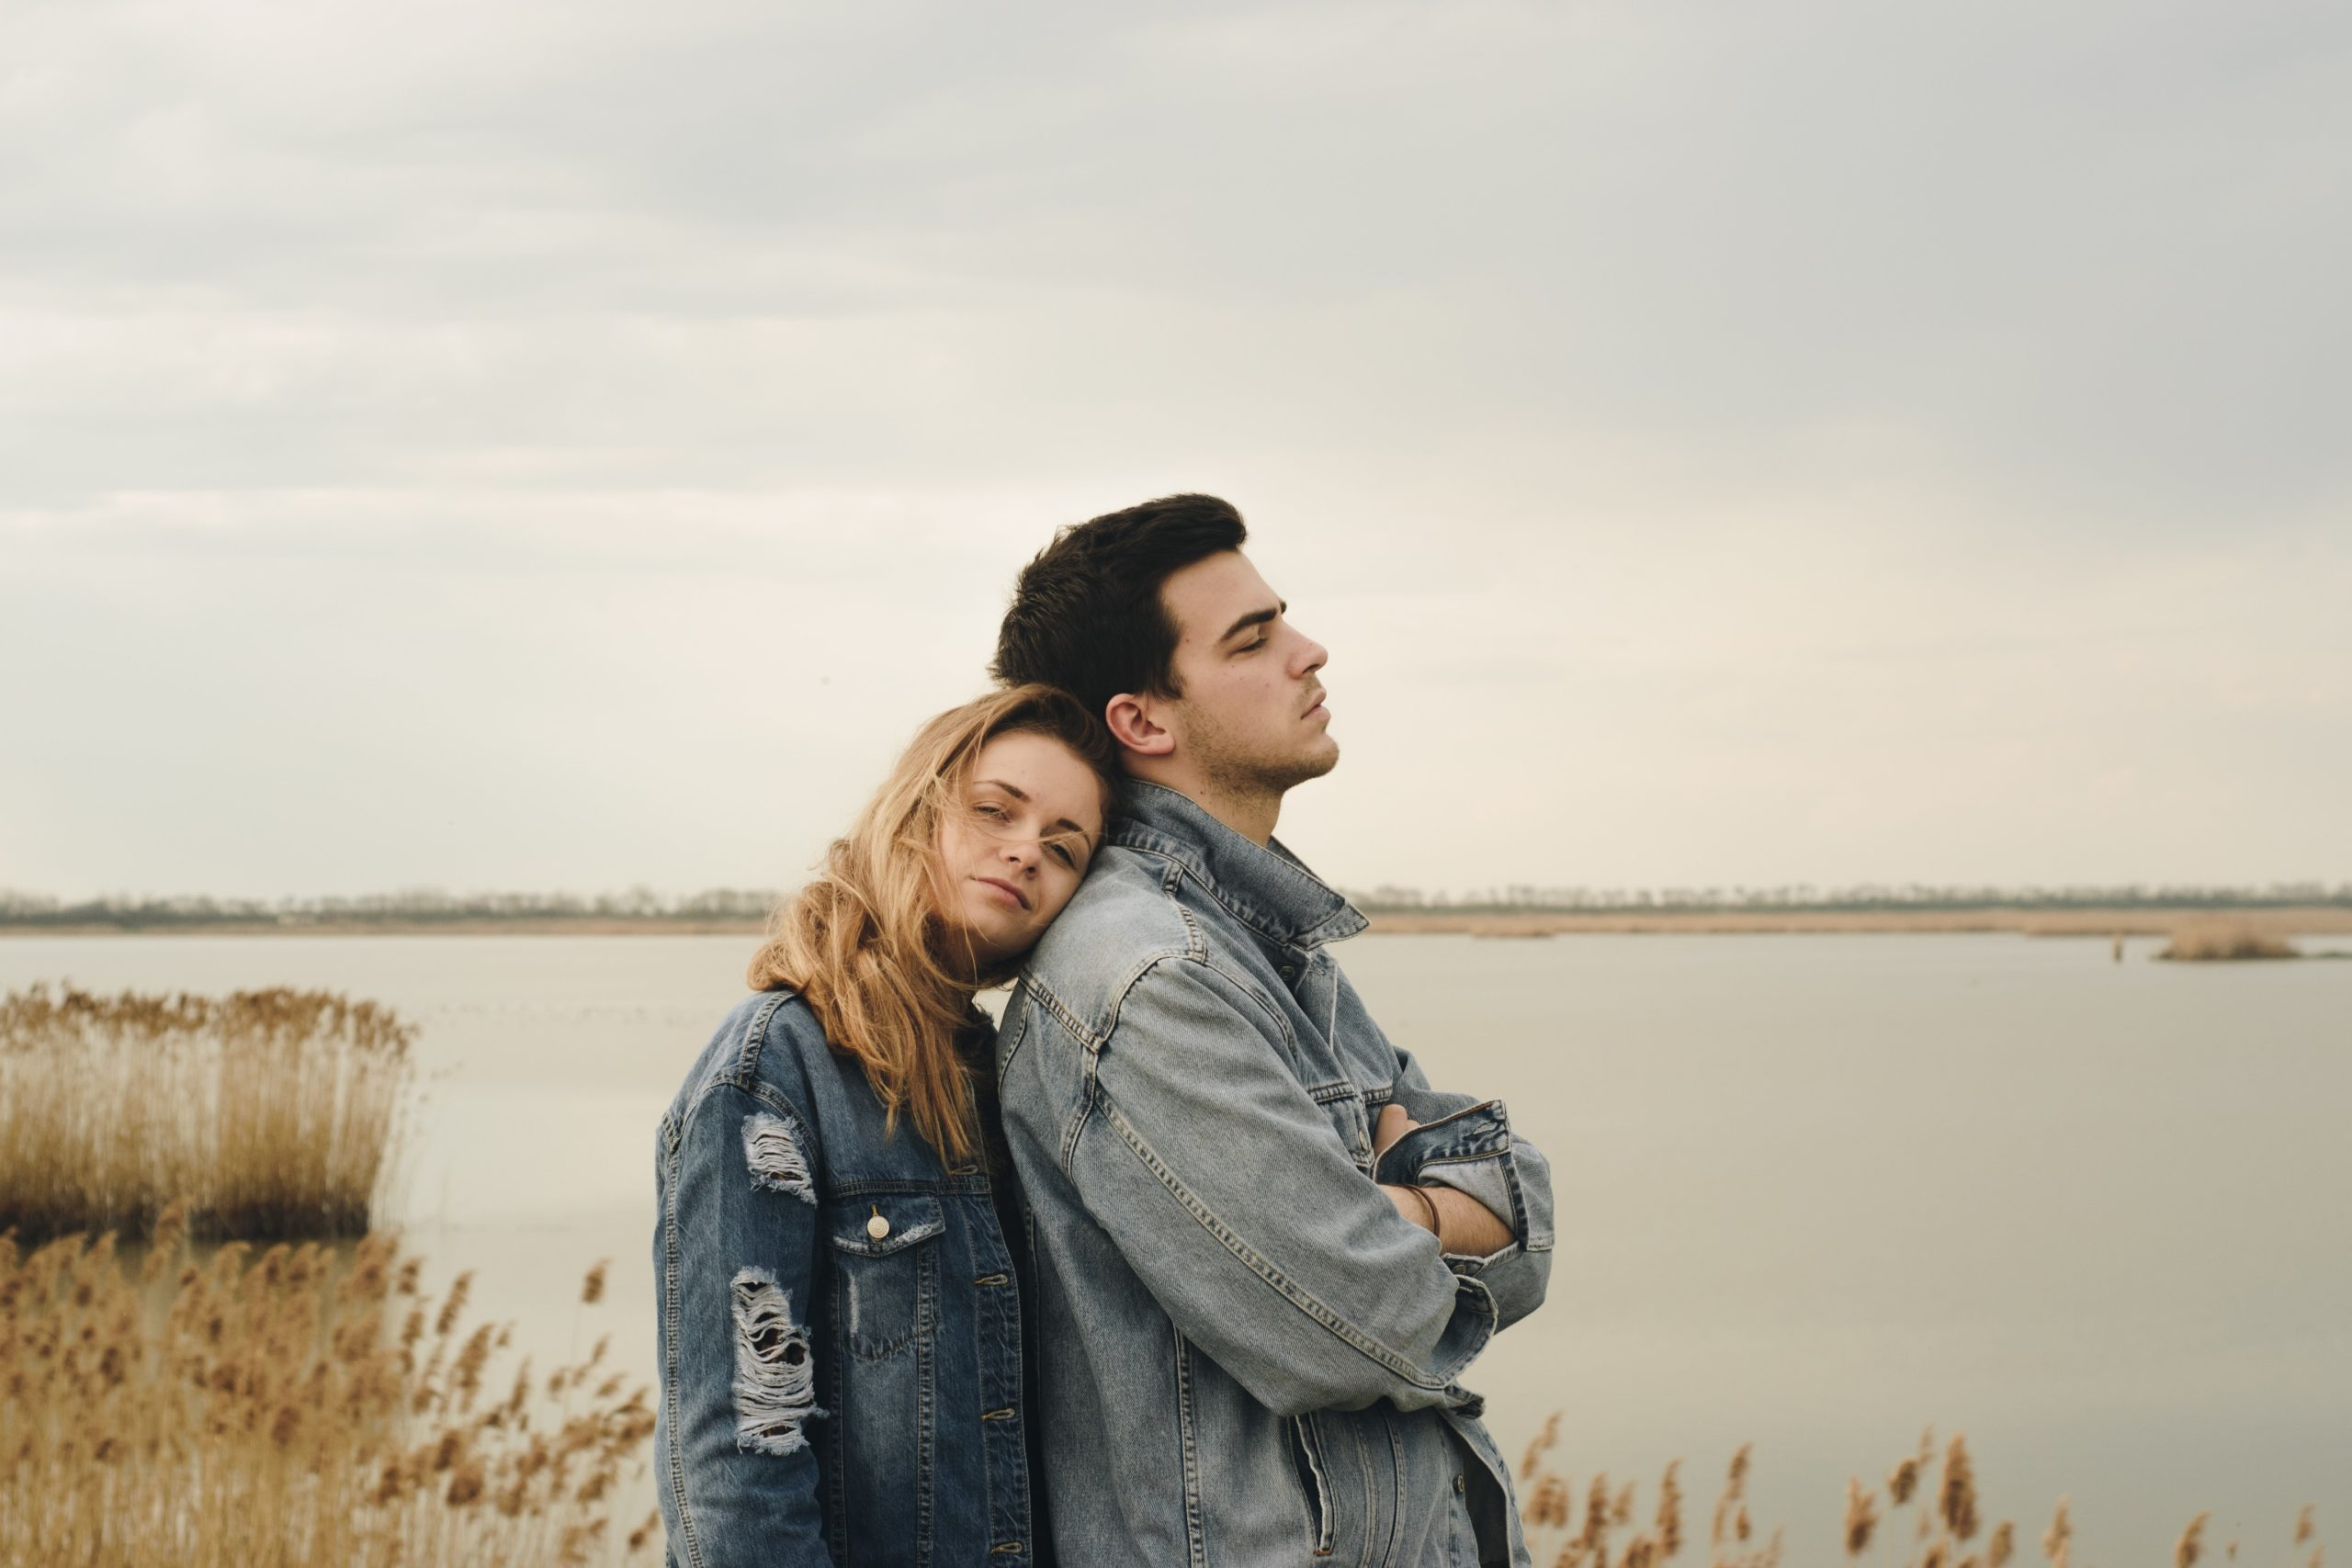 Is my partner a narcissist?